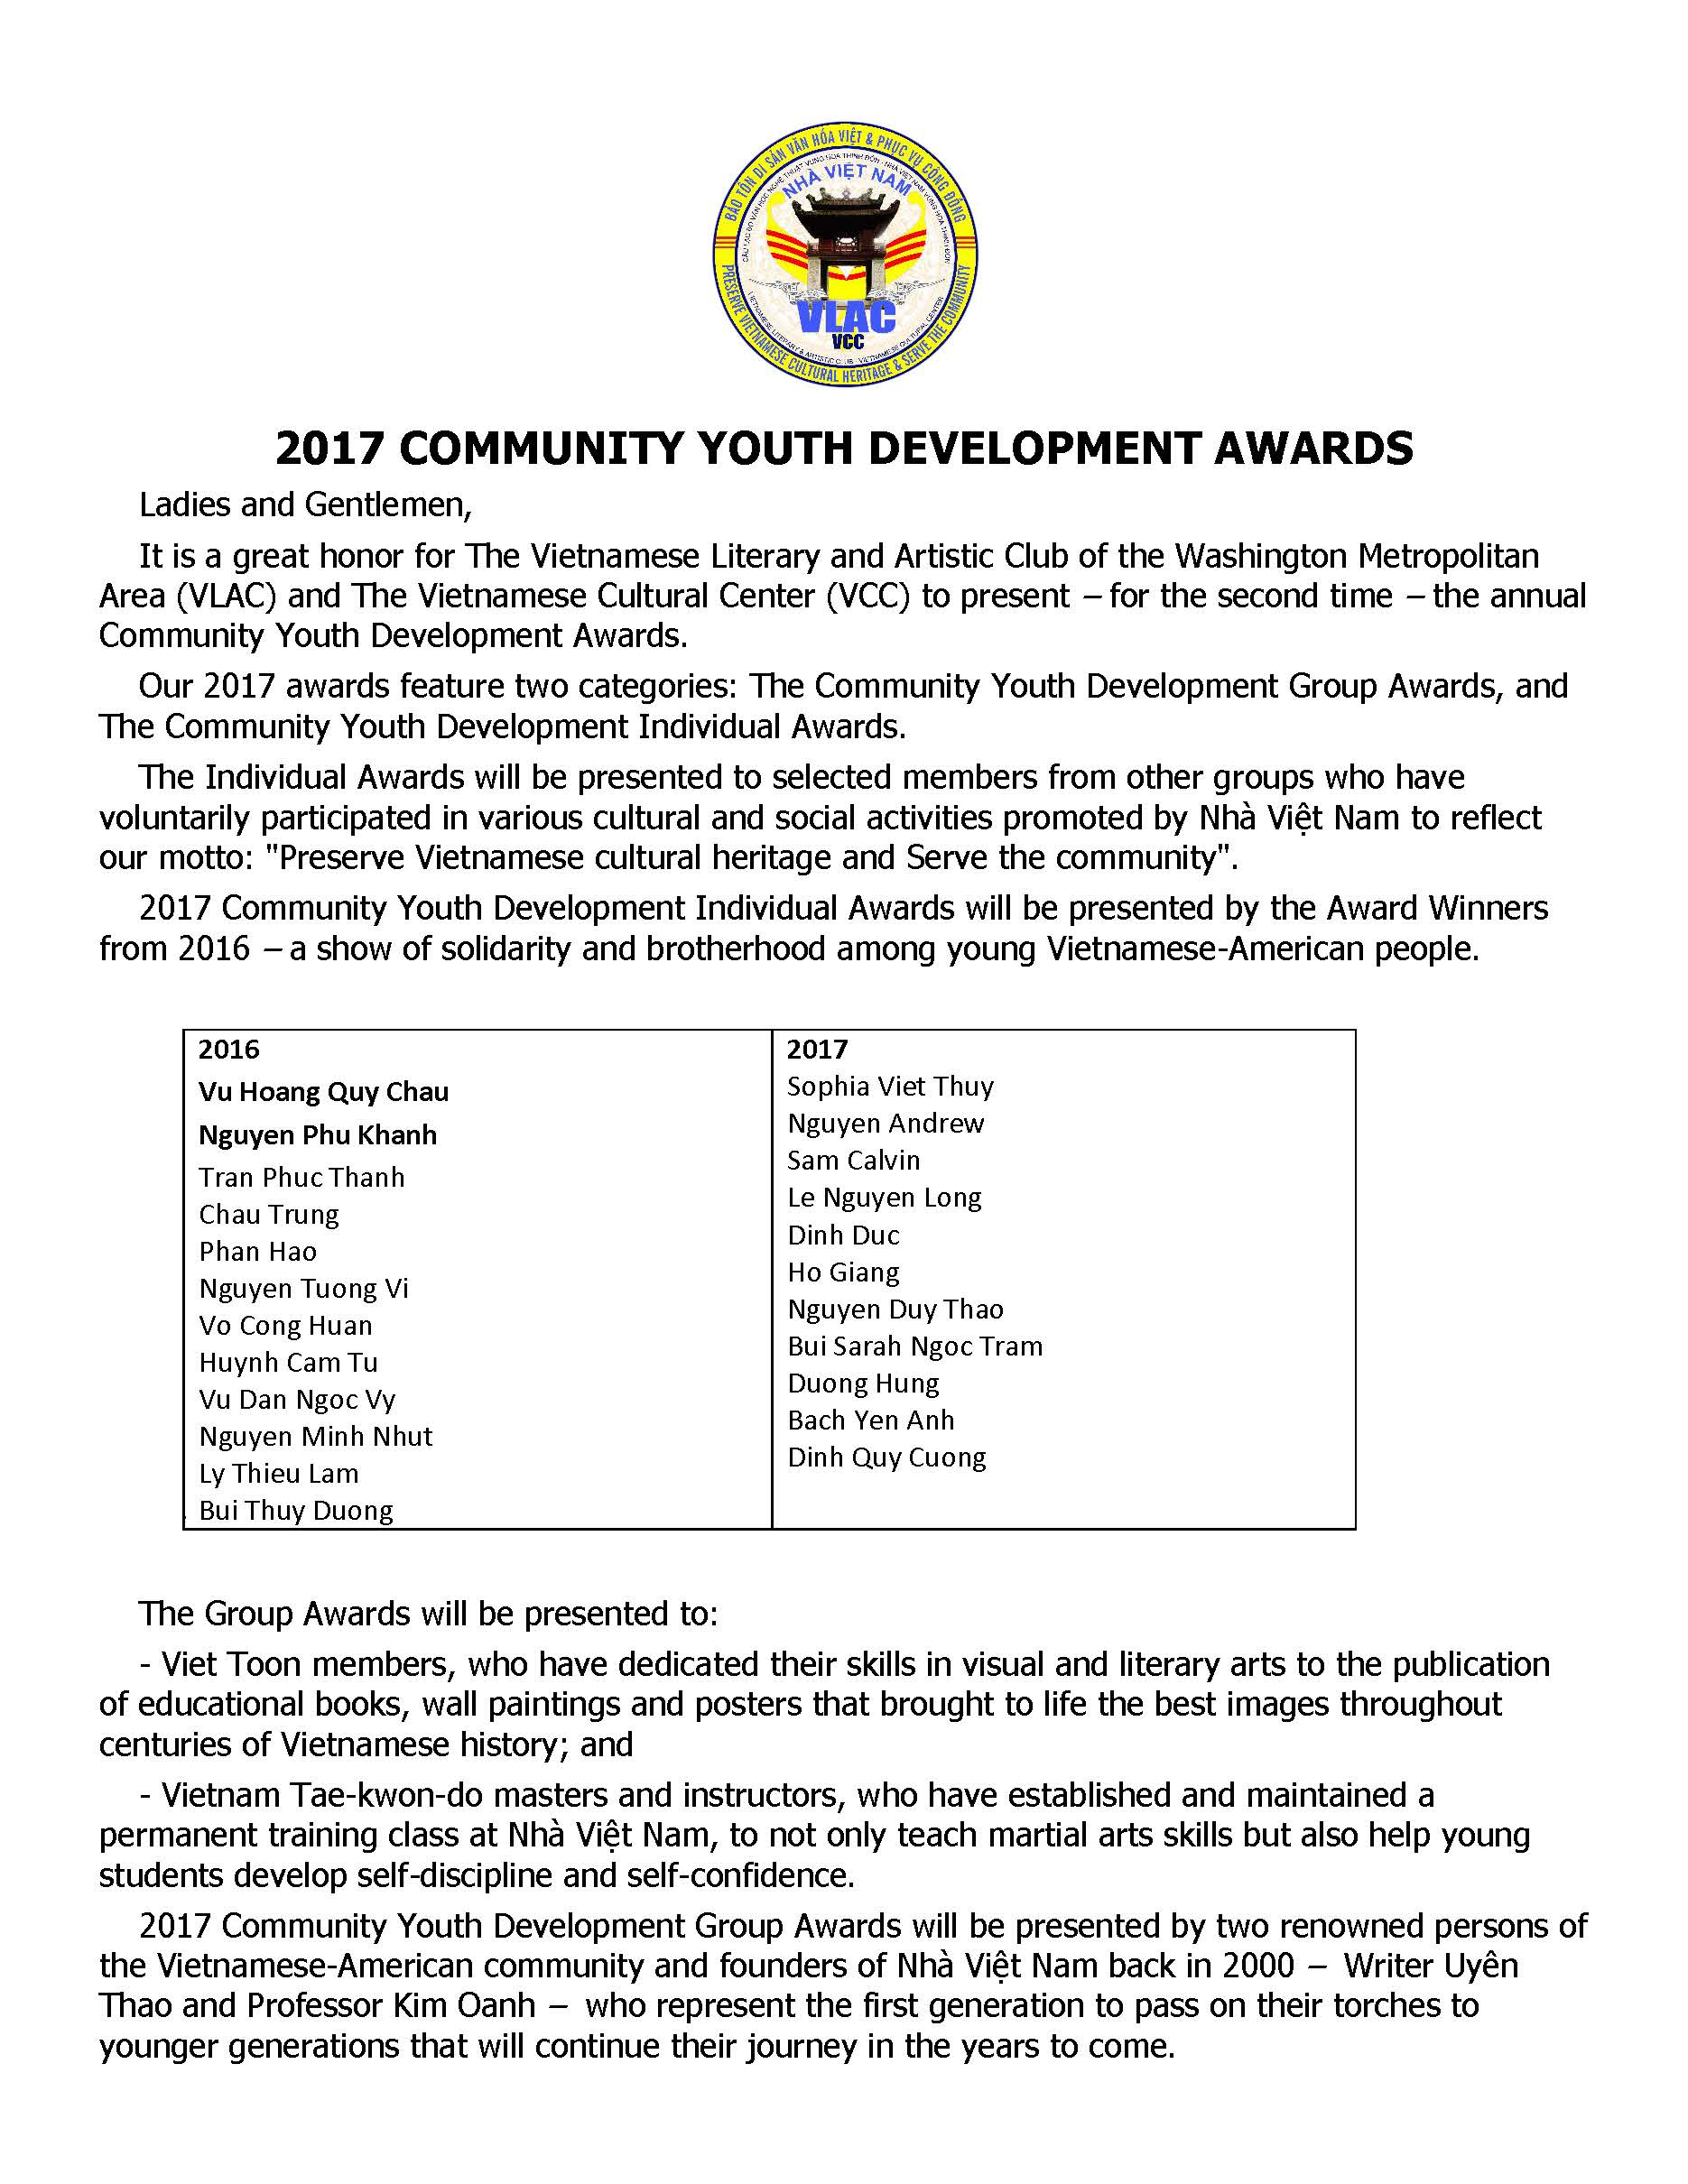 2017 Community Youth Development Awards(1)